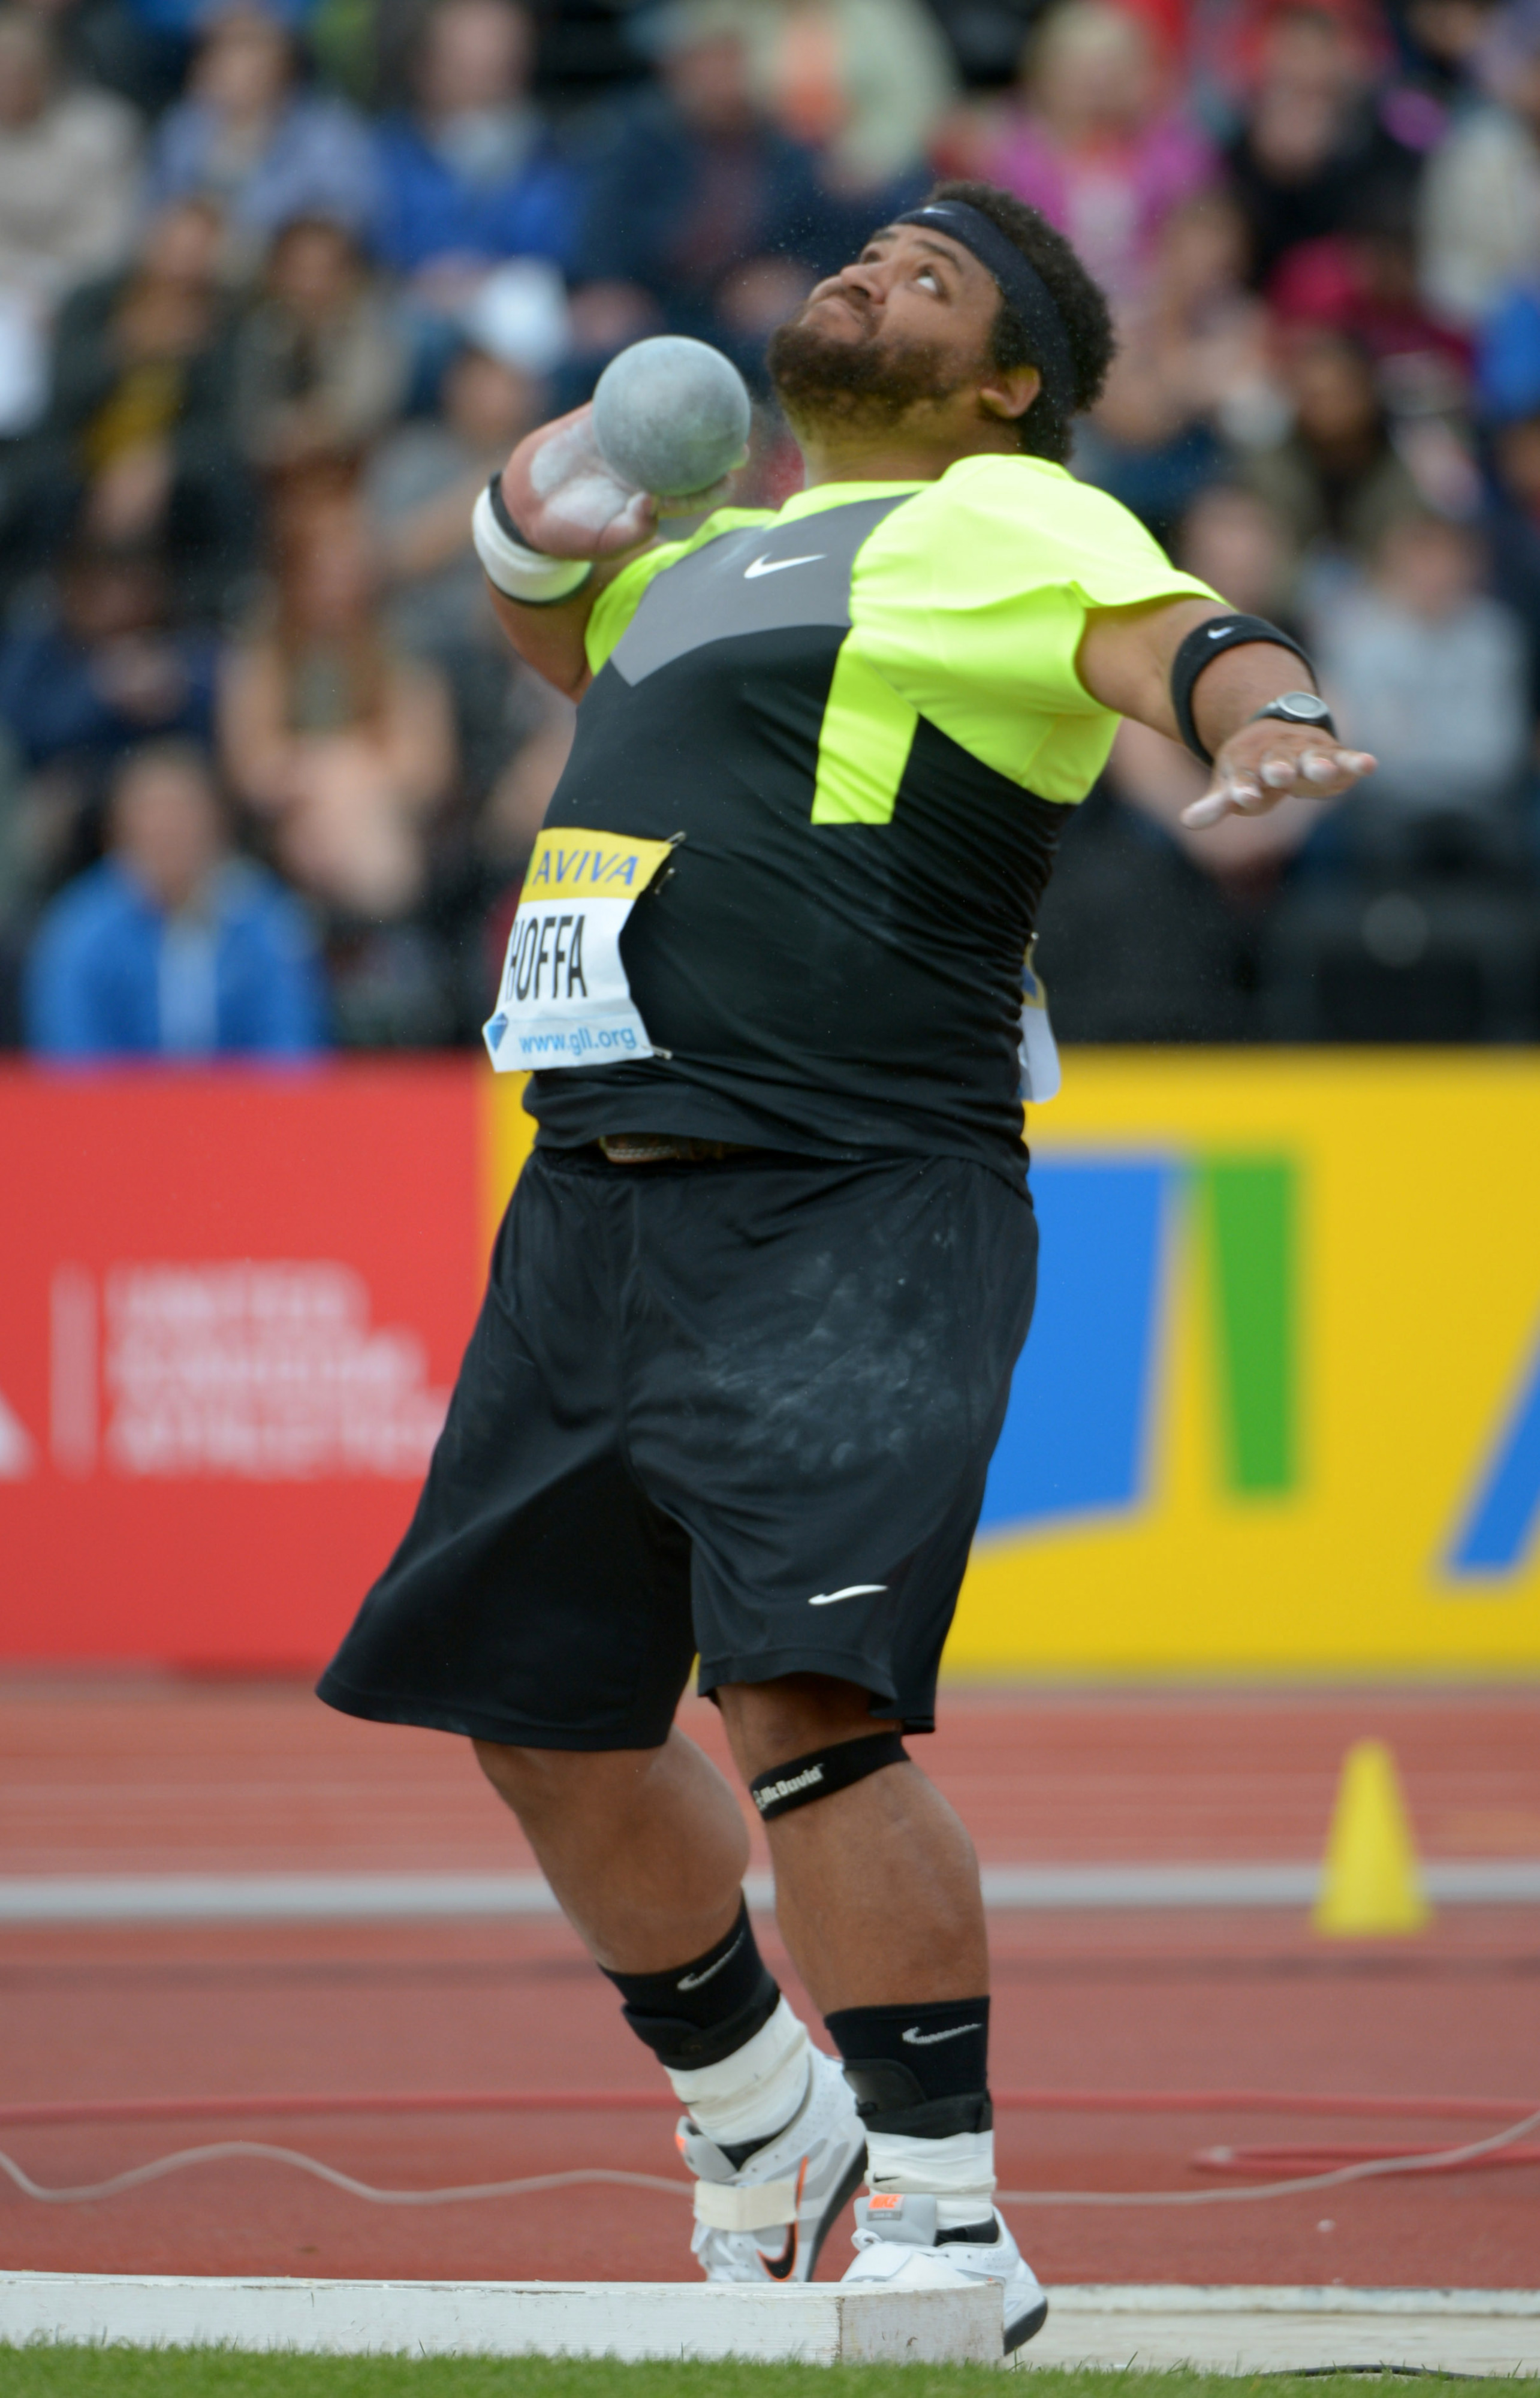 Georgia's Reese Hoffa (USA) won the conference's first track & field medal with a bronze in the shot put.